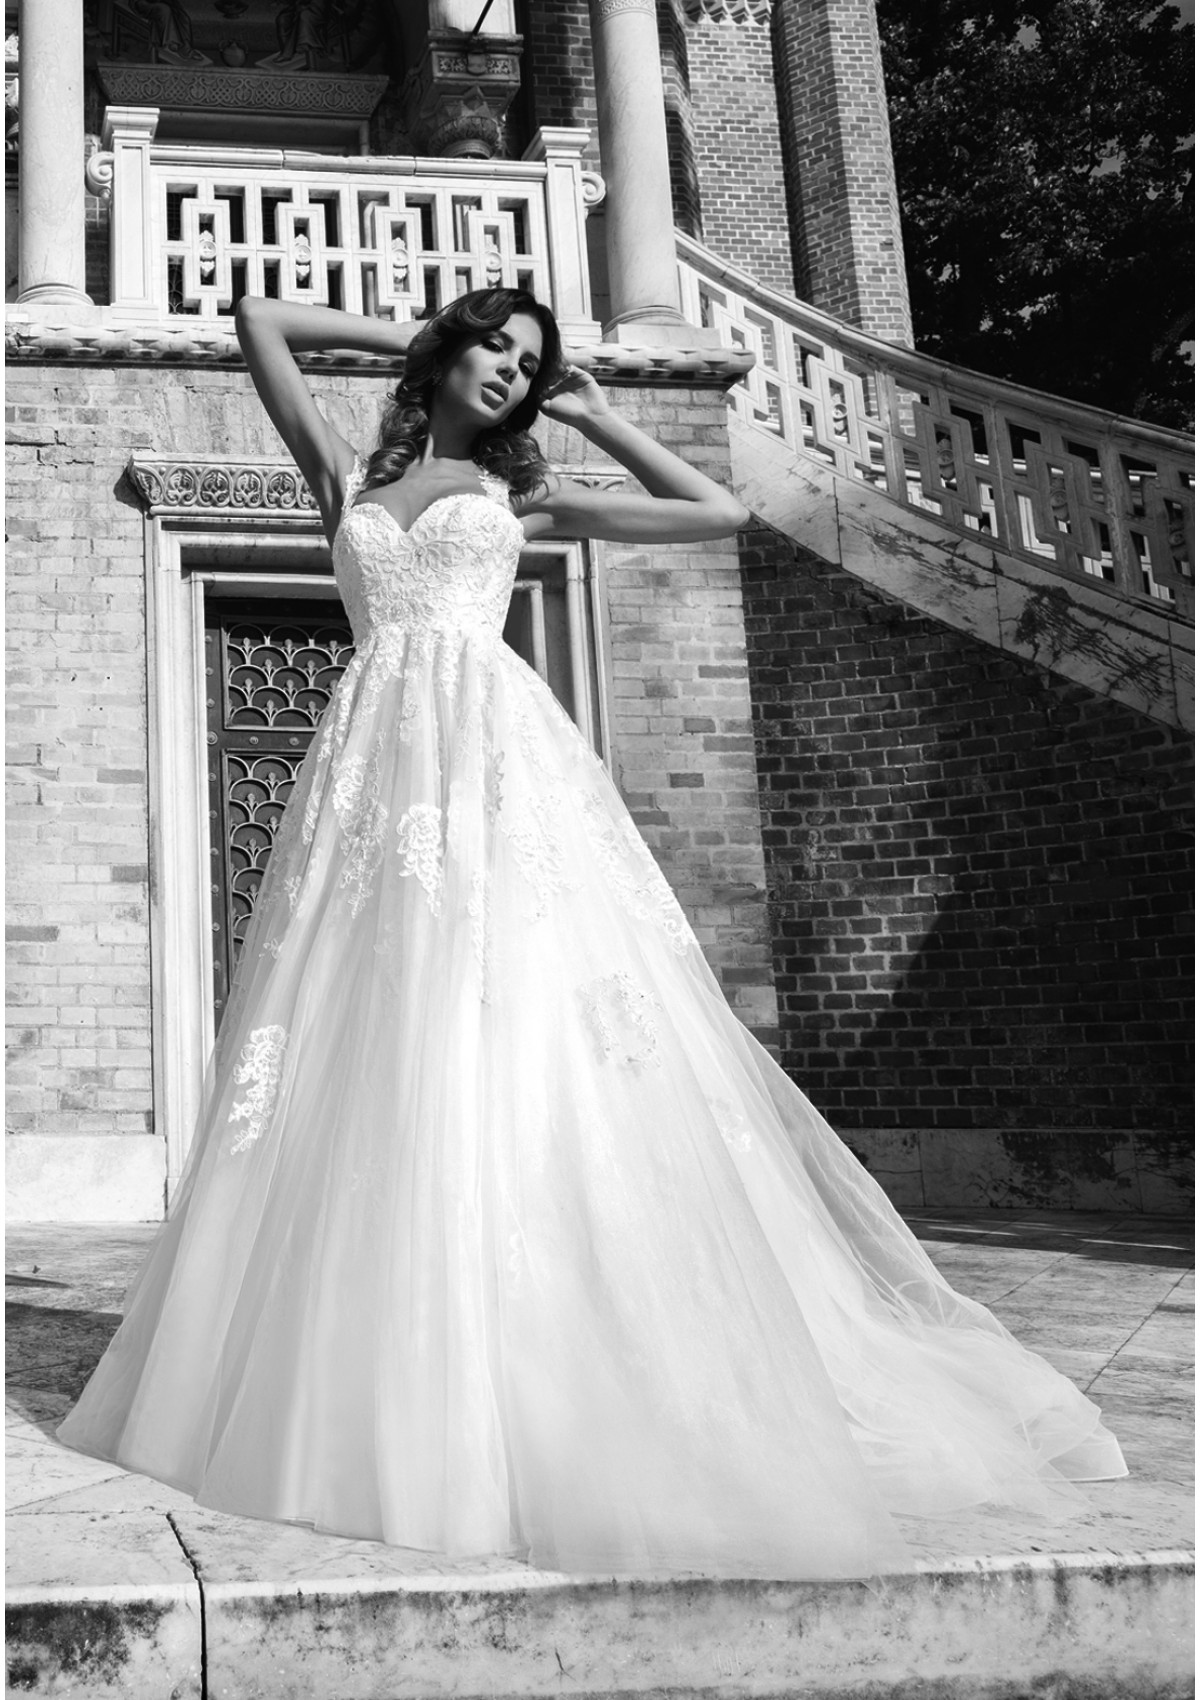 bien-savvy-wedding-dresses-7-08272014nz